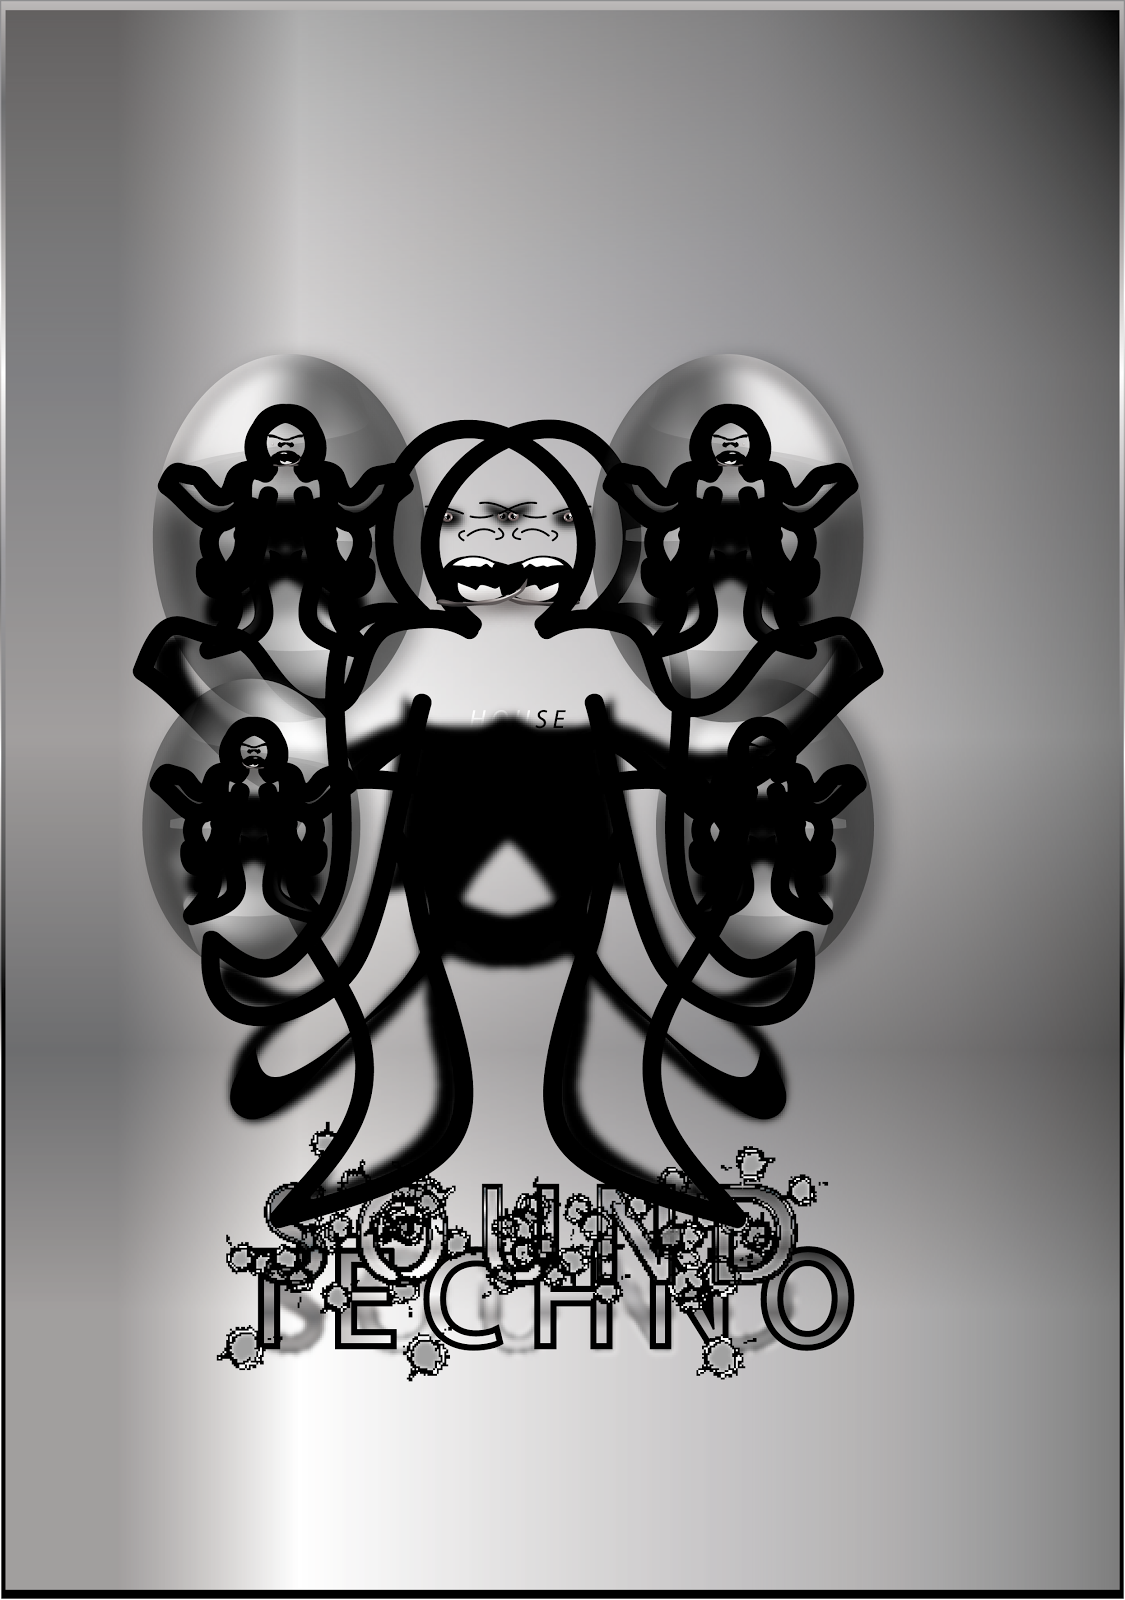 TECHNO SOUND #IlLusTraTOr